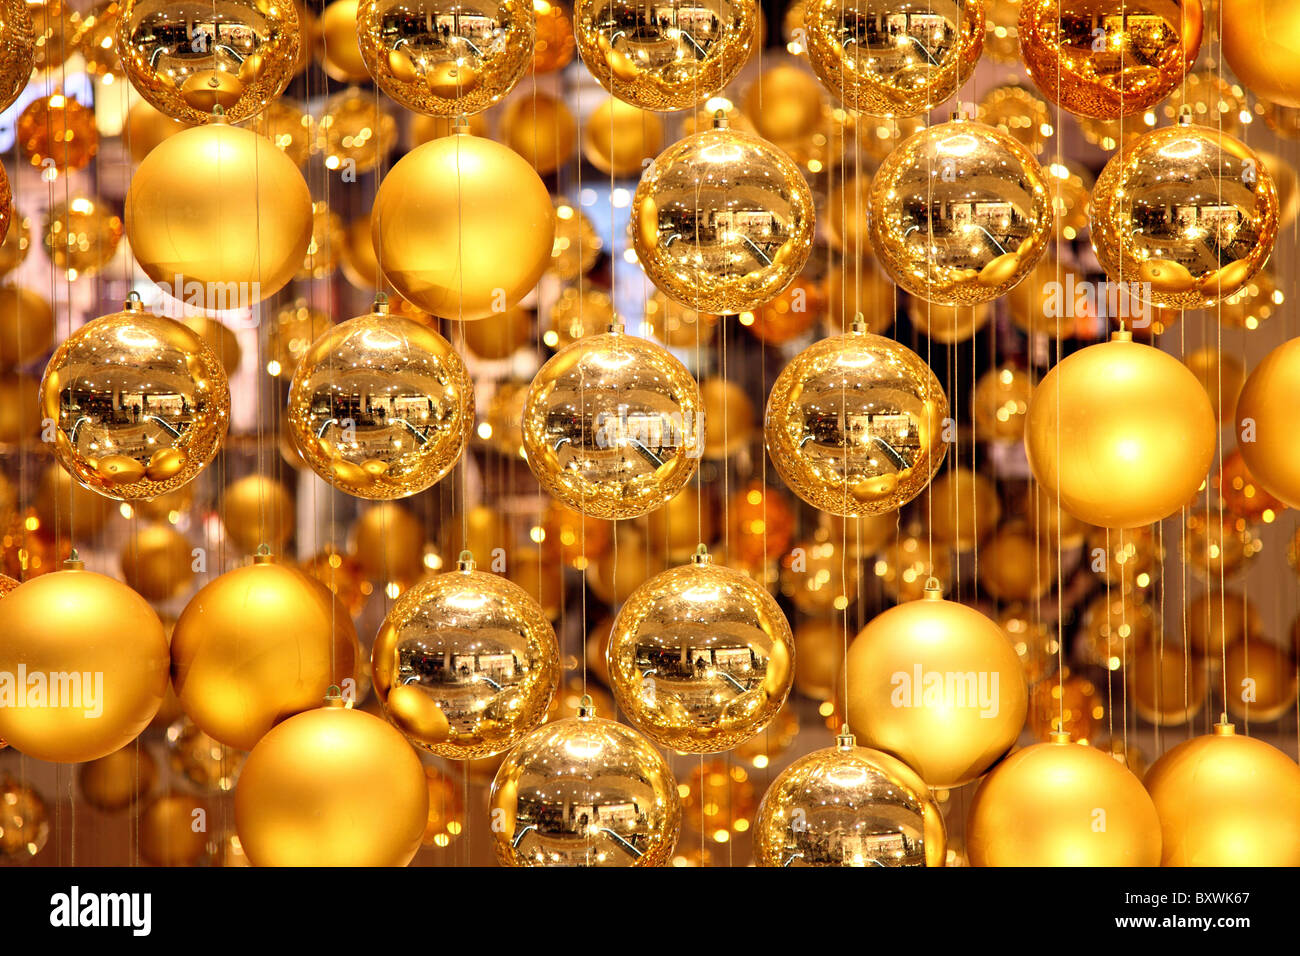 Christmas Decoration In A Shopping Mall Many Golden Tree Balls Forms Giant Ball